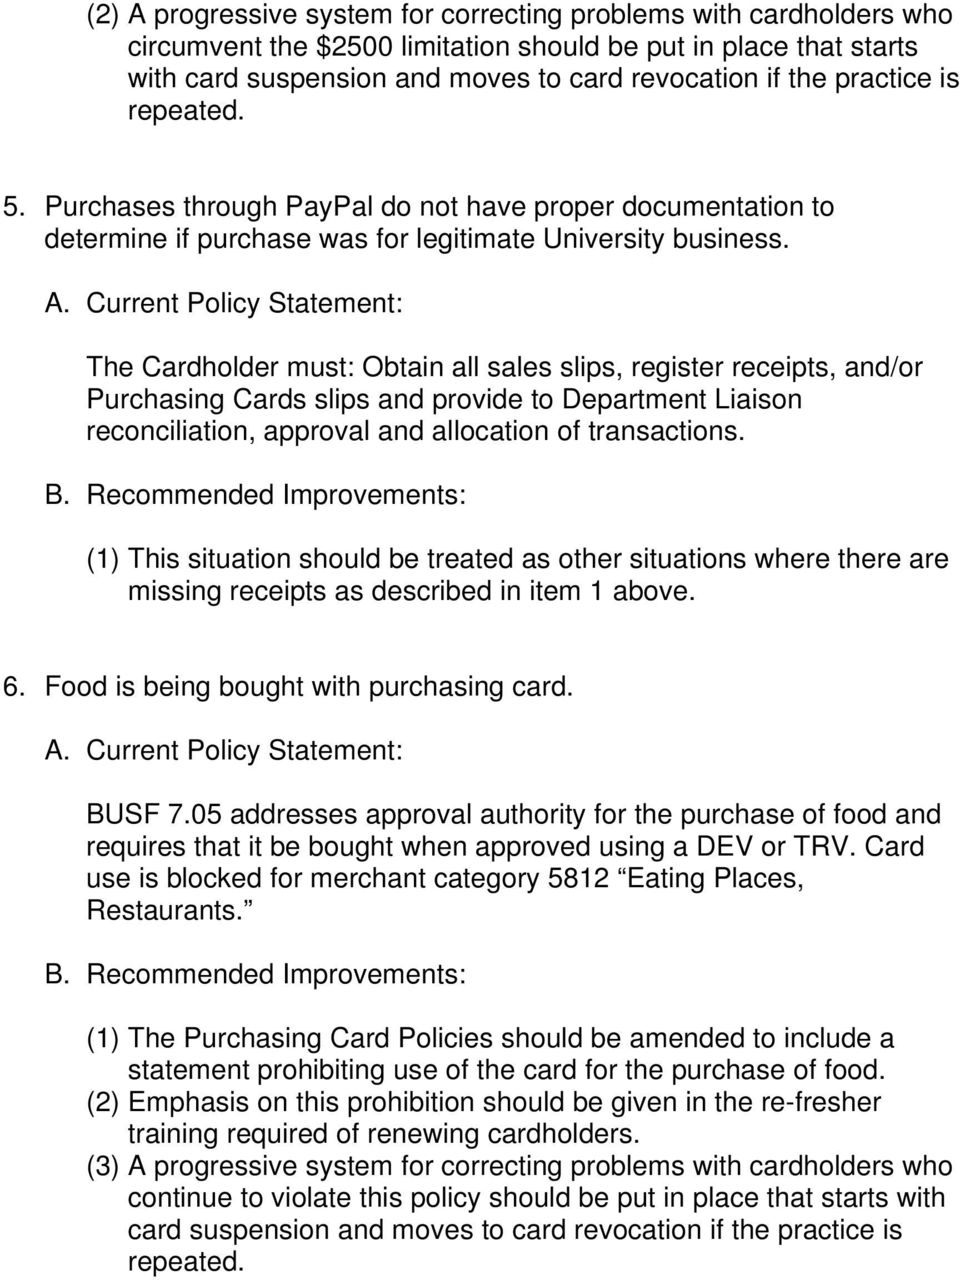 Current Policy Statement: The Cardholder must: Obtain all sales slips, register receipts, and/or Purchasing Cards slips and provide to Department Liaison reconciliation, approval and allocation of